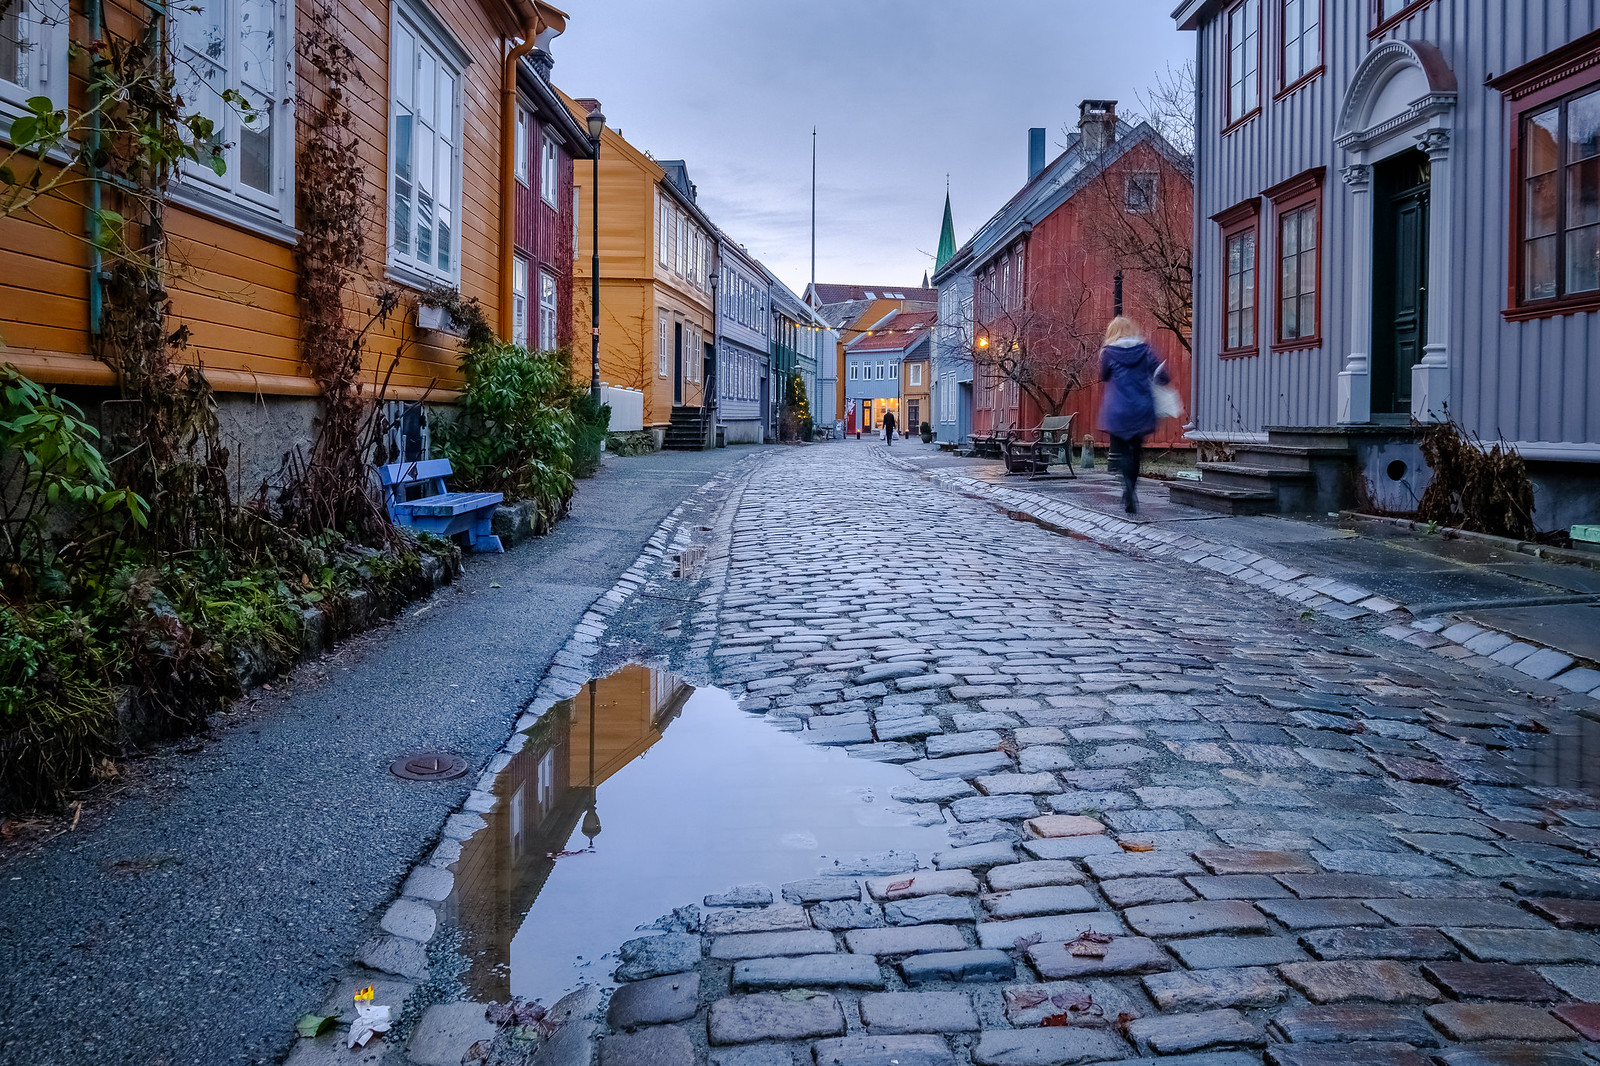 A rainy day at Bakklandet in Trondheim